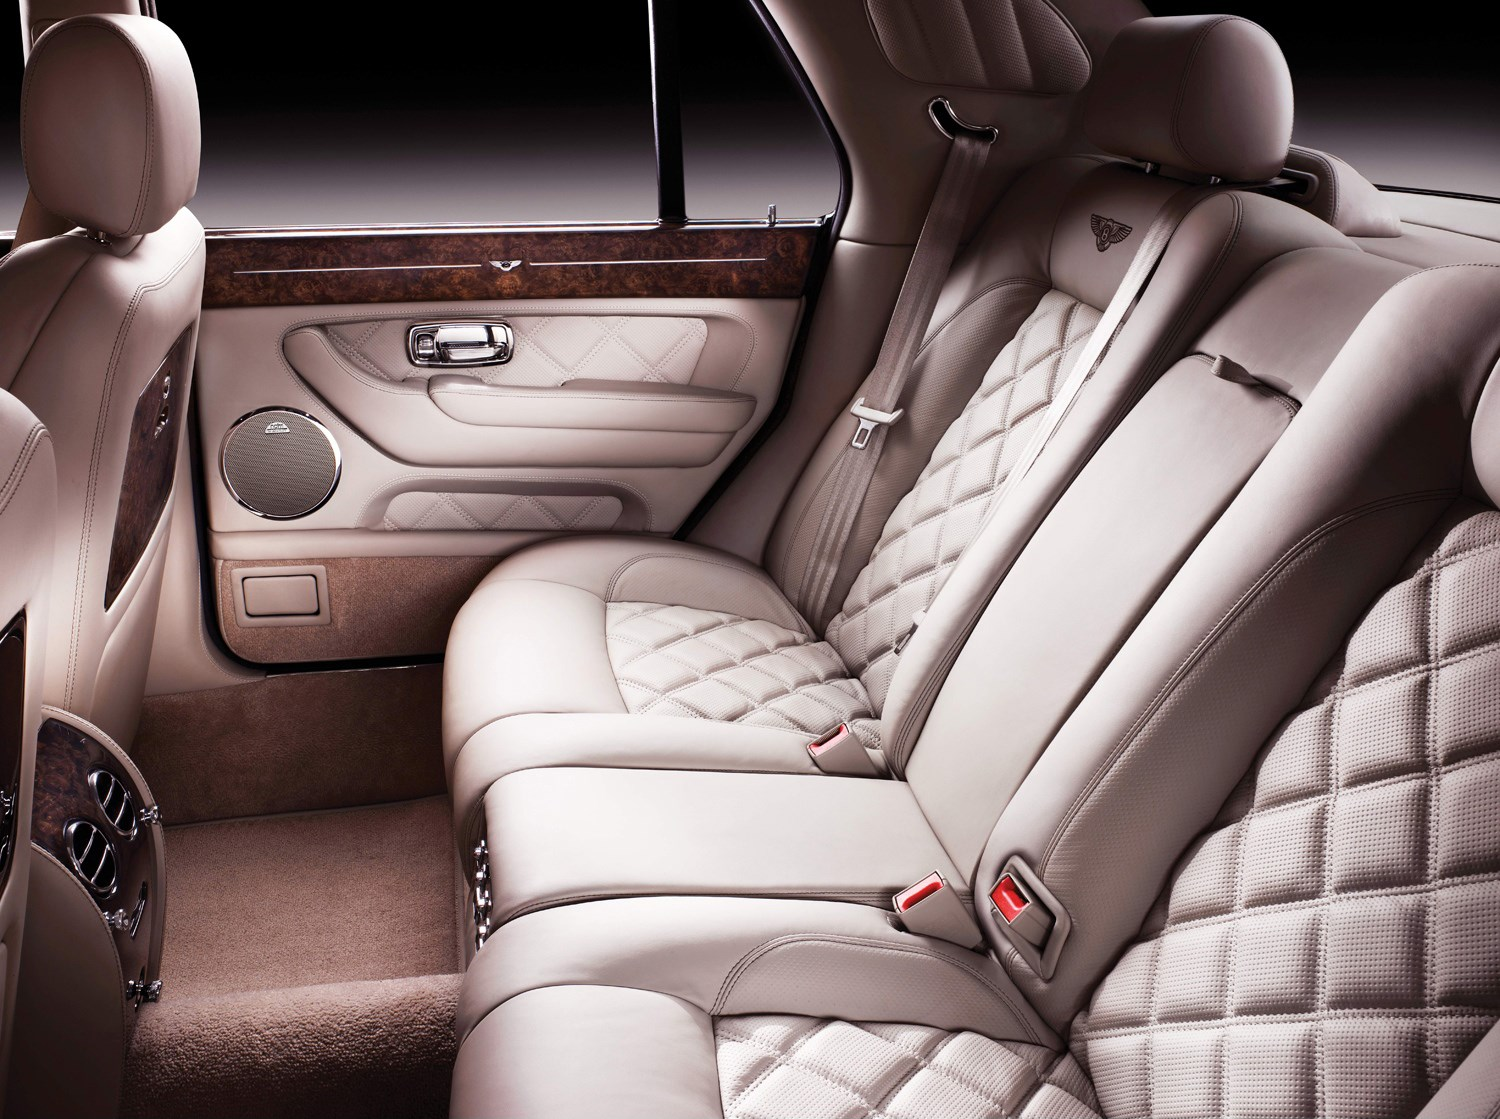 Bentley Arnage Saloon Review 1998 2009 Parkers 2005 Wiring Diagram